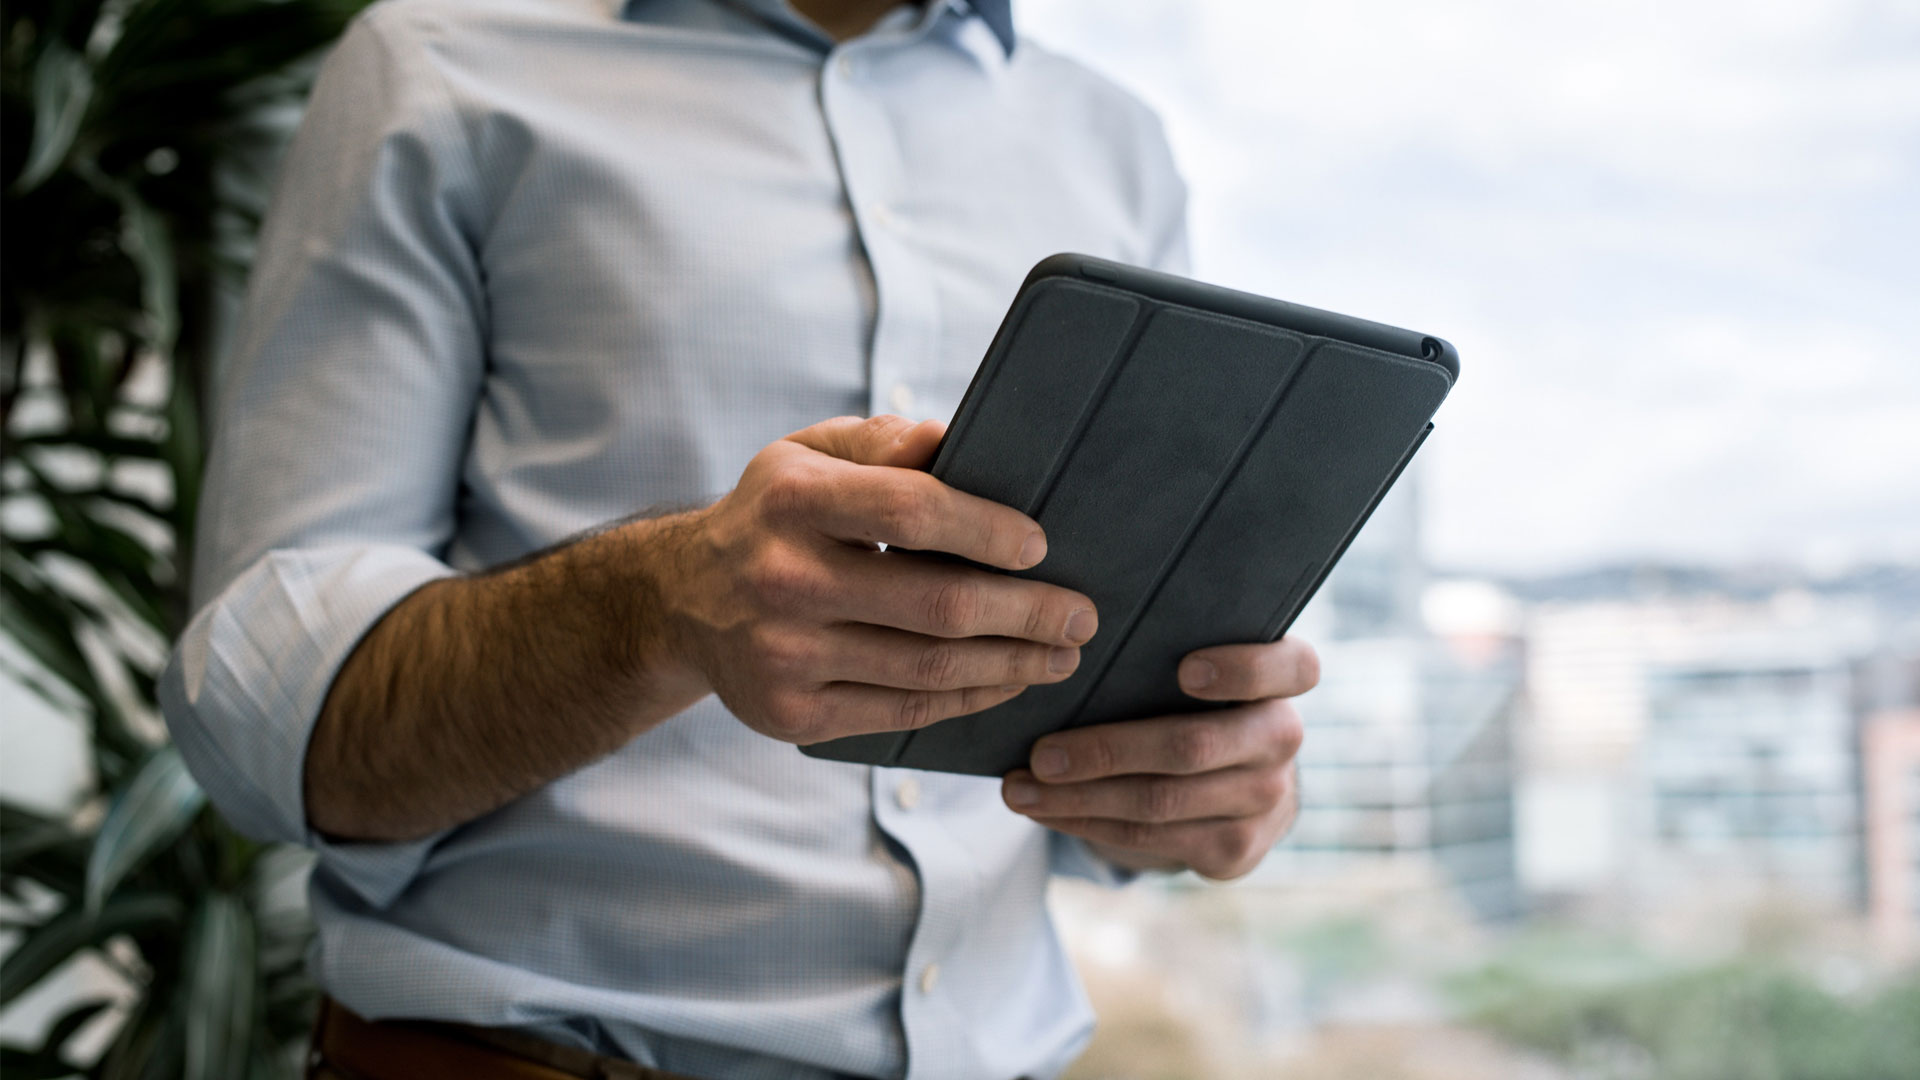 Man using iPad, shown from the neck down